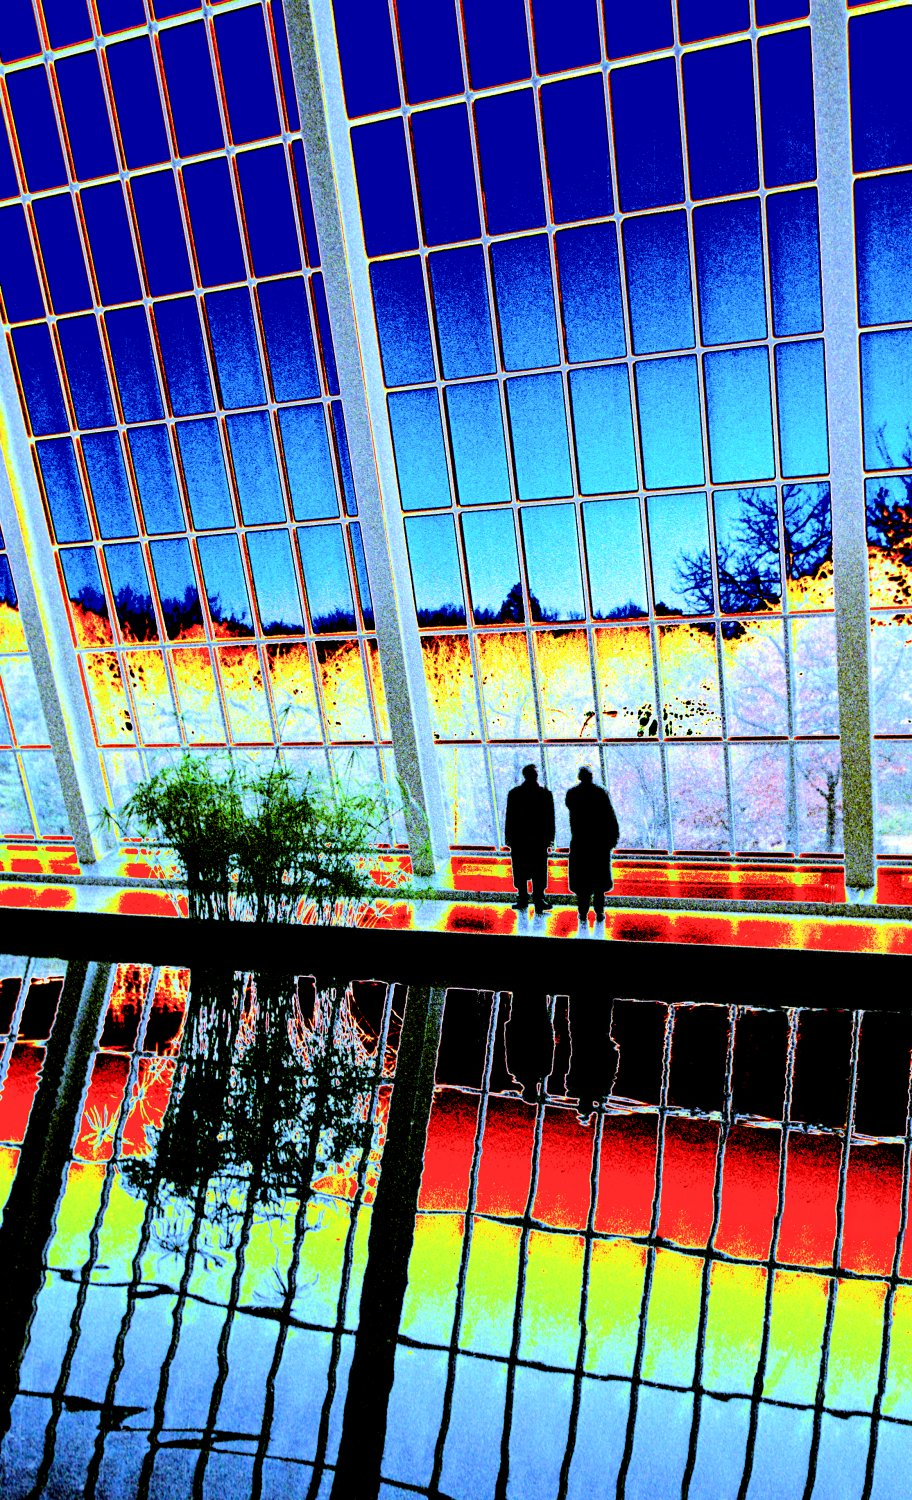 reflection in the pool in the Temple of Dendur in the Metropolitan Museum of Art - <center>Reagan and Gorbachev, 1984 - Techno-Impressionist Museum - Techno-Impressionism - art - beautiful - photo photography picture - by Tony Karp